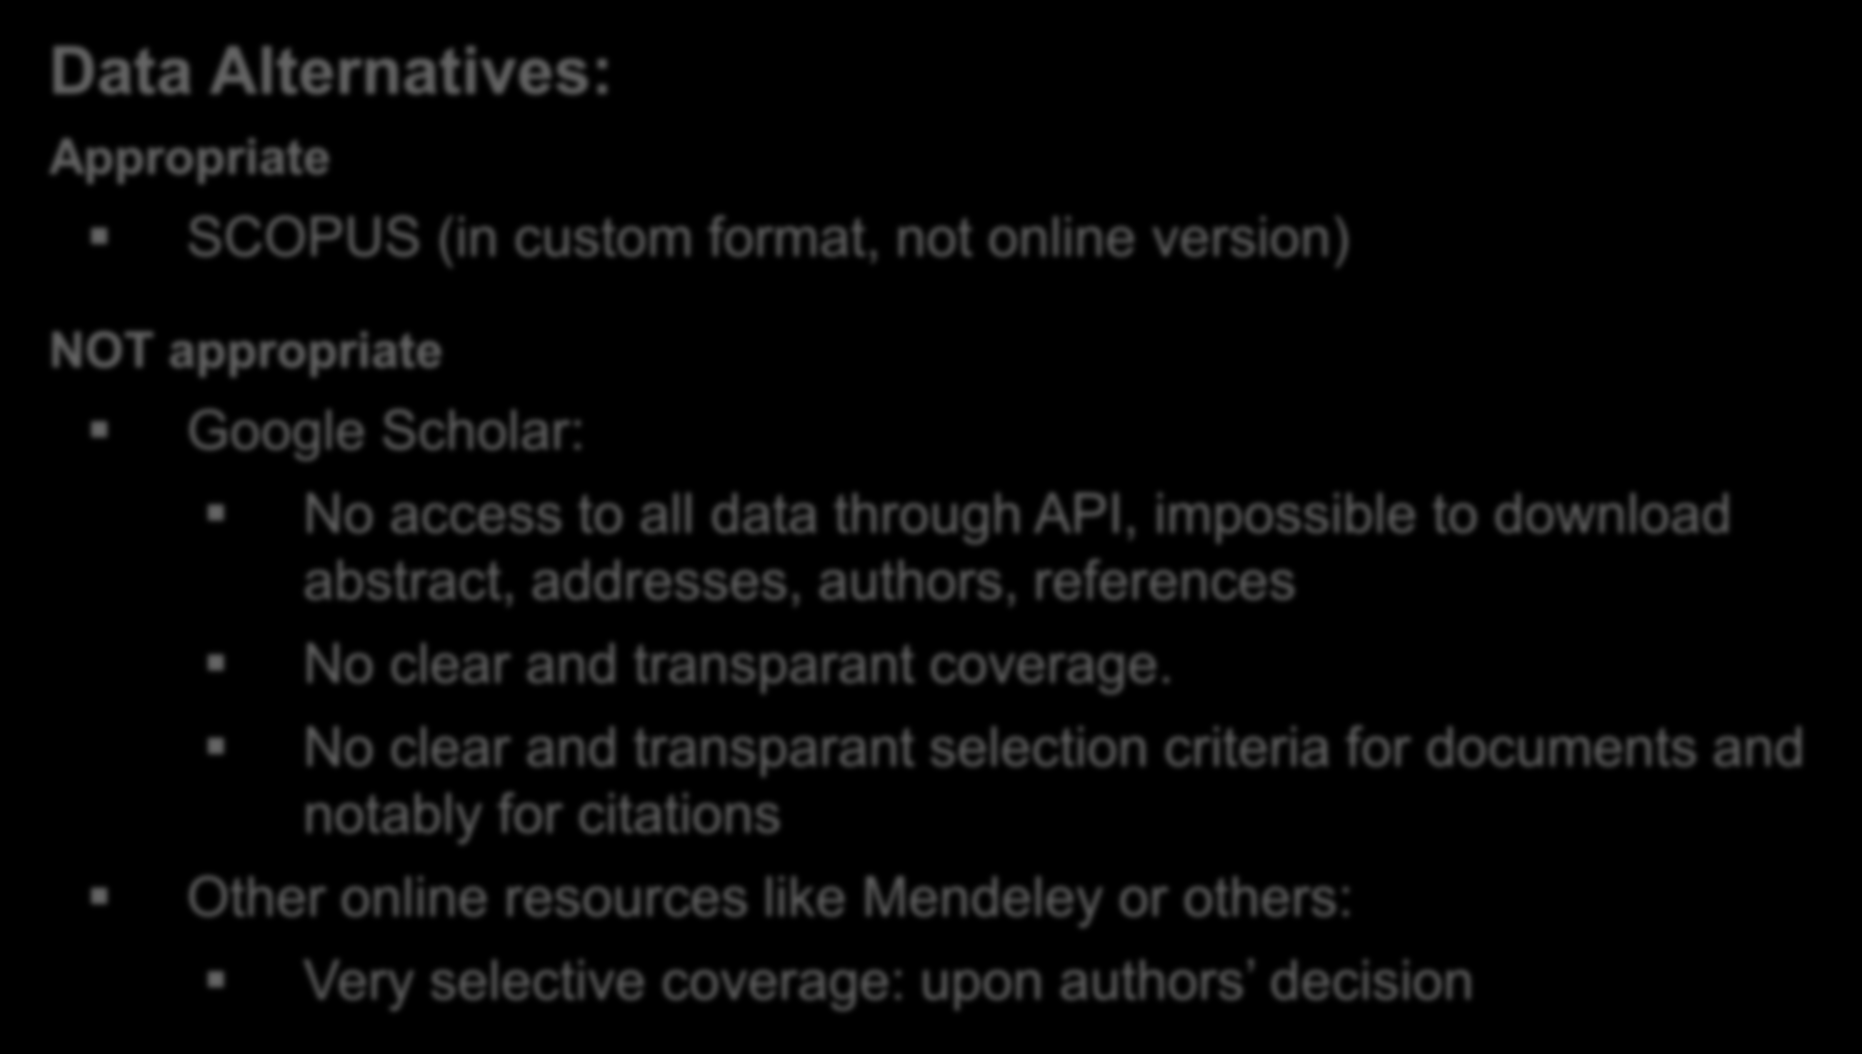 Importance of appropriate data source Data Alternatives: Appropriate SCOPUS (in custom format, not online version) NOT appropriate Google Scholar: No access to all data through API, impossible to